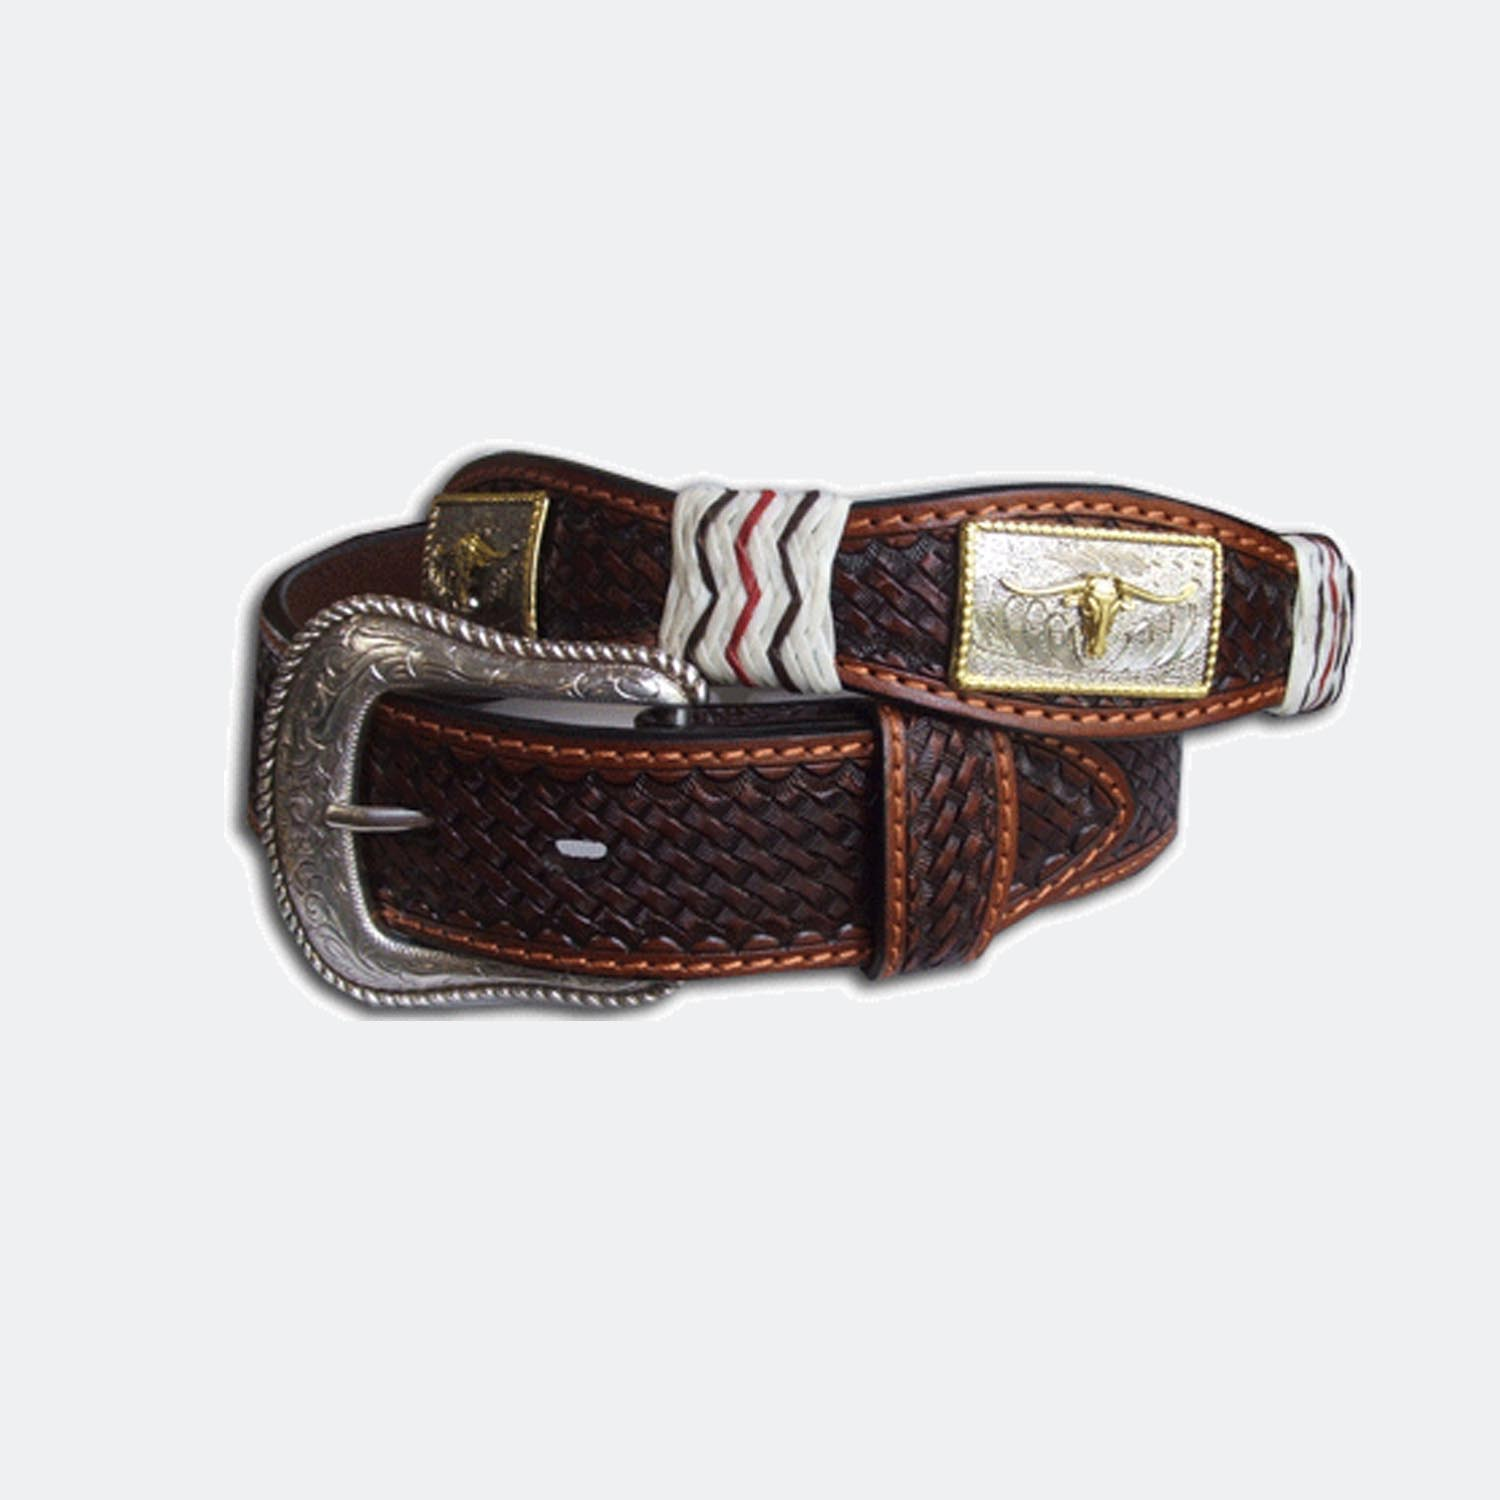 leather belt with bull conchos and buckle pboz australia